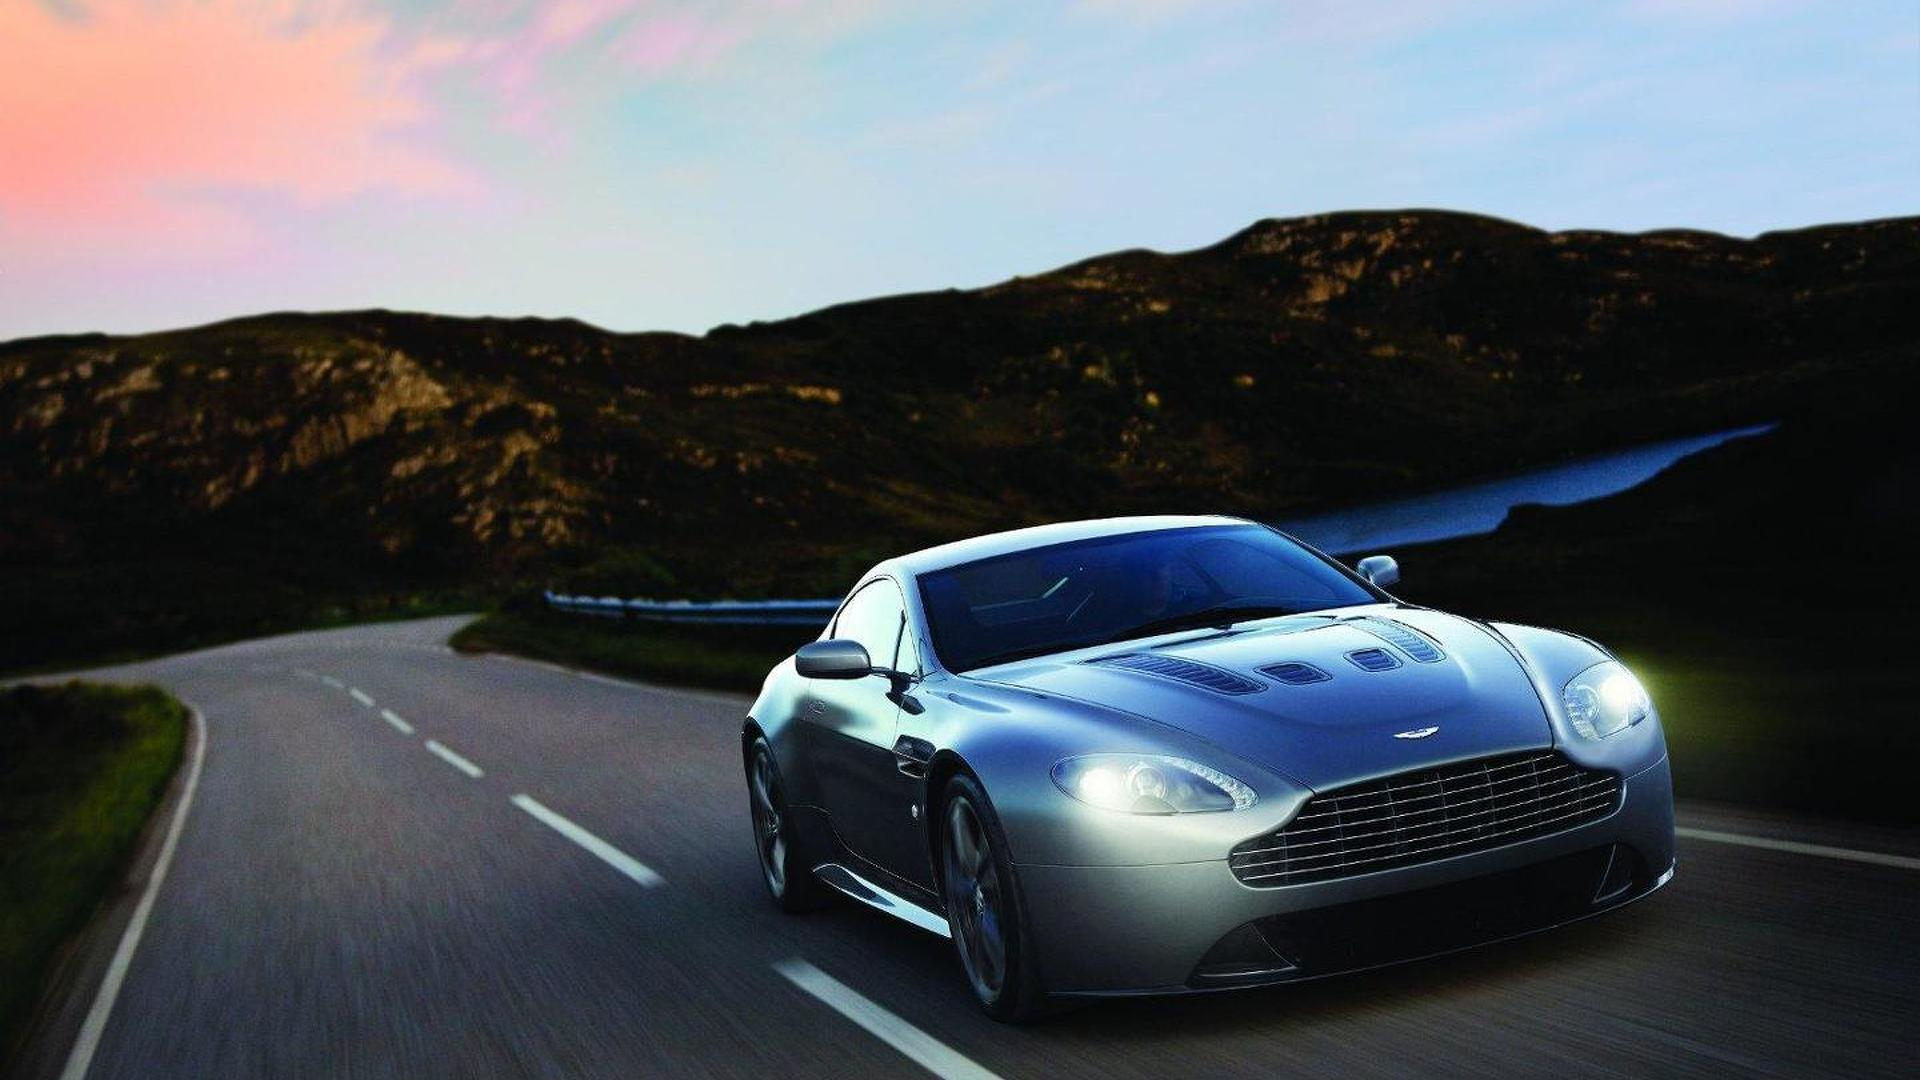 2011 aston martin v12 vantage u.s. pricing starts at $179,995